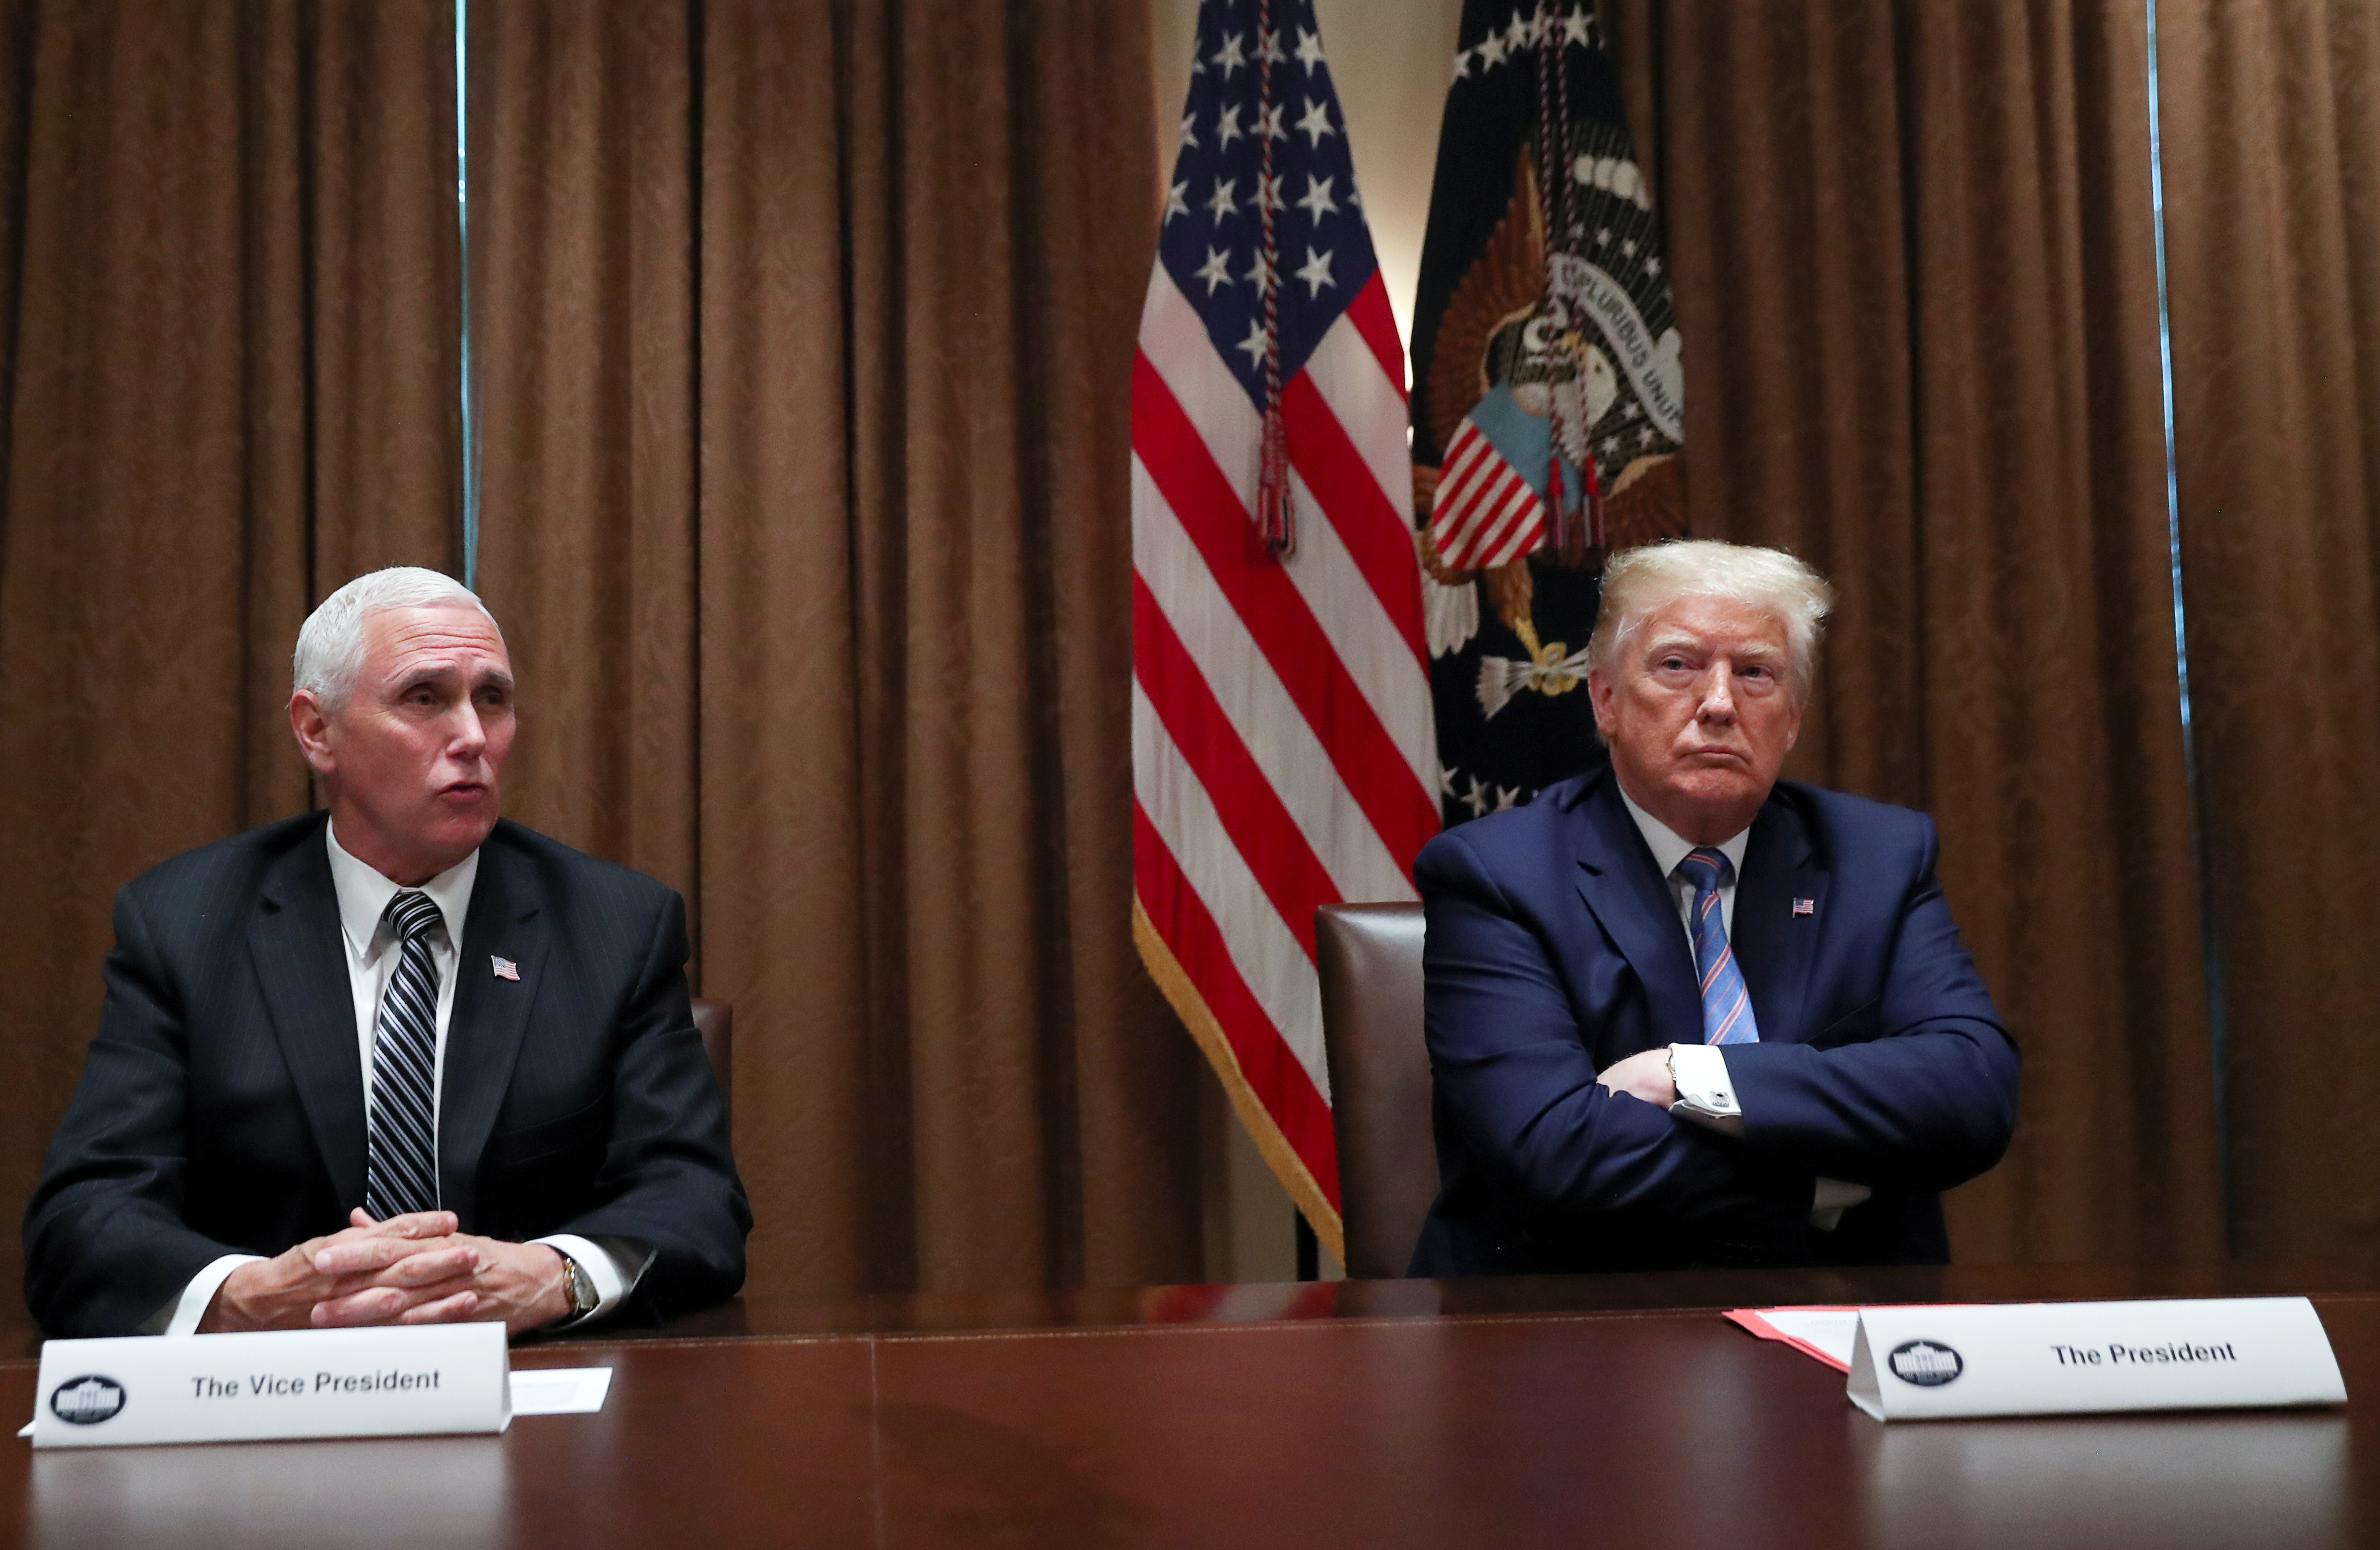 """FILE PHOTO: U.S. President Donald Trump listens to Vice President Mike Pence speak during a roundtable discussion on """"America's seniors"""" in the Cabinet Room at the White House in Washington, U.S., June 15, 2020. REUTERS/Leah Millis"""